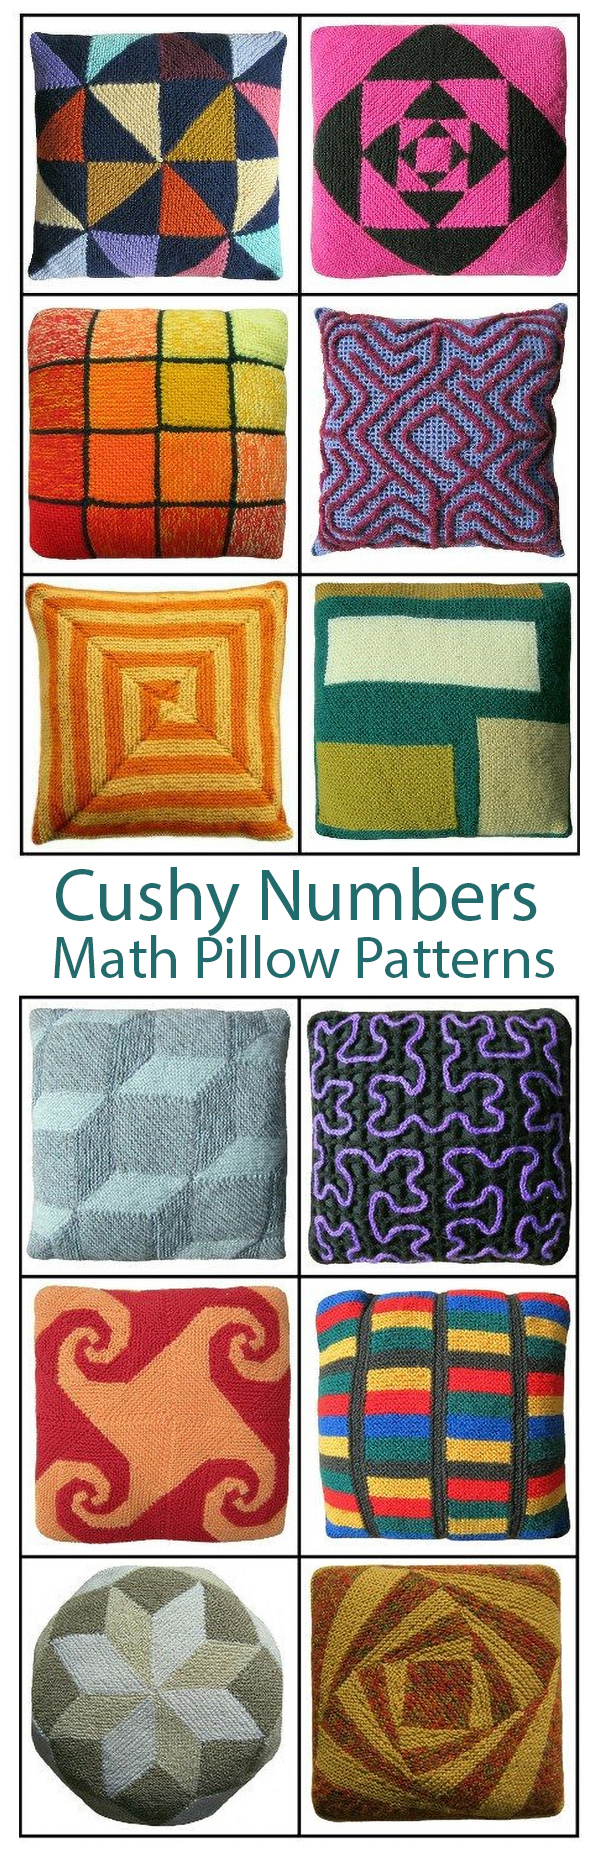 Cushy Numbers Knitting and Crochet Patterns for Mathematical Pillows